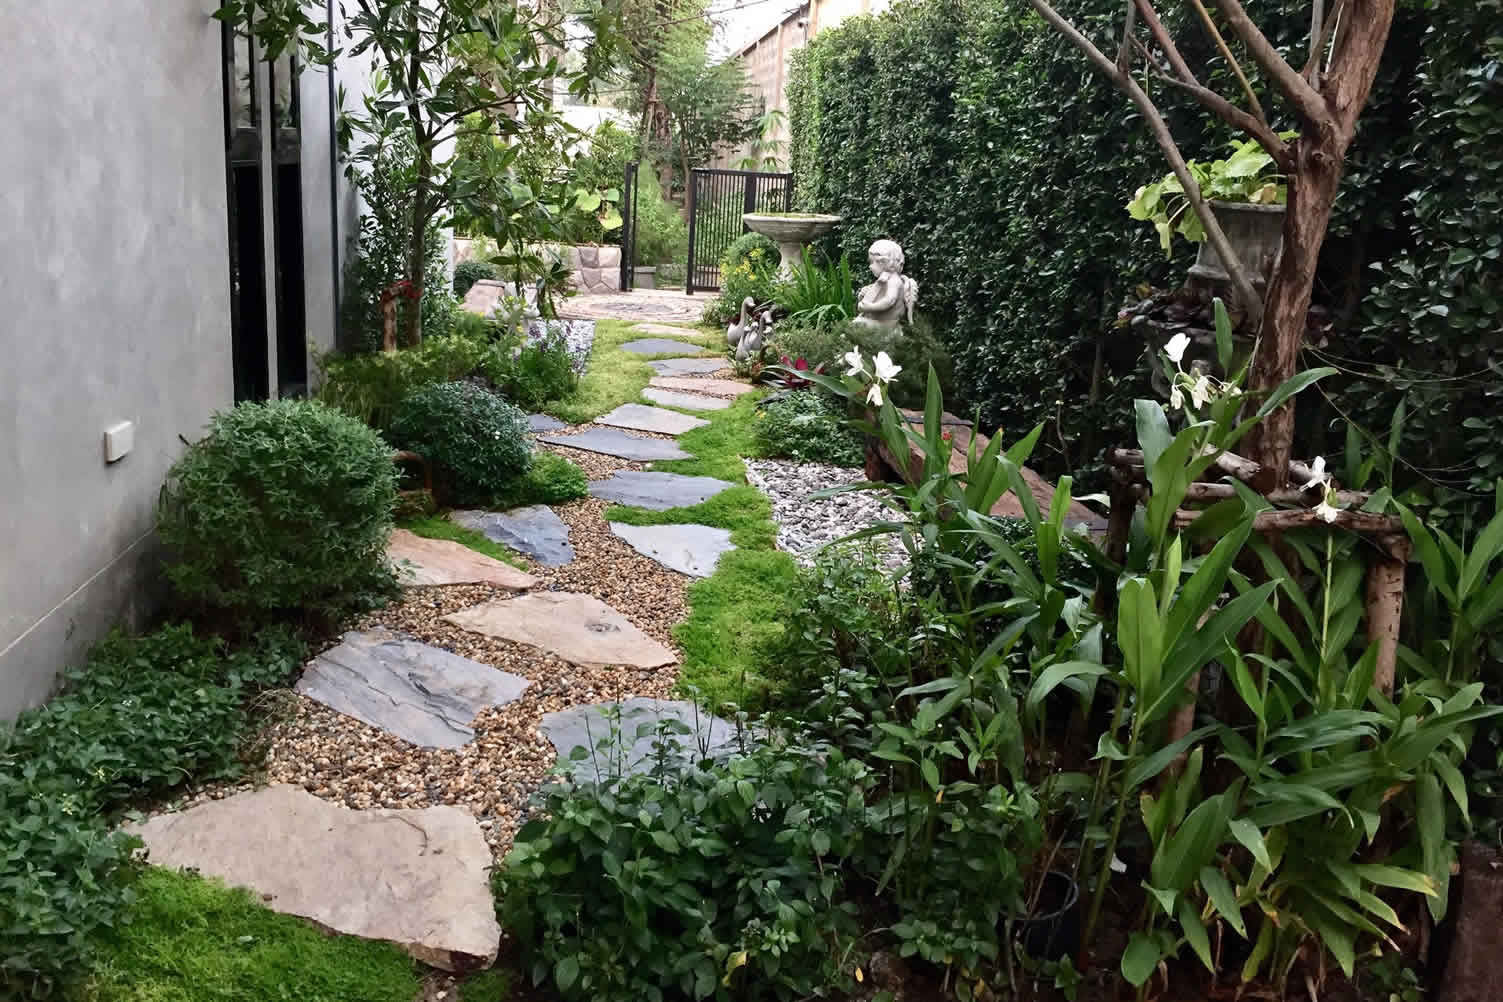 ways to improve residential landscapes